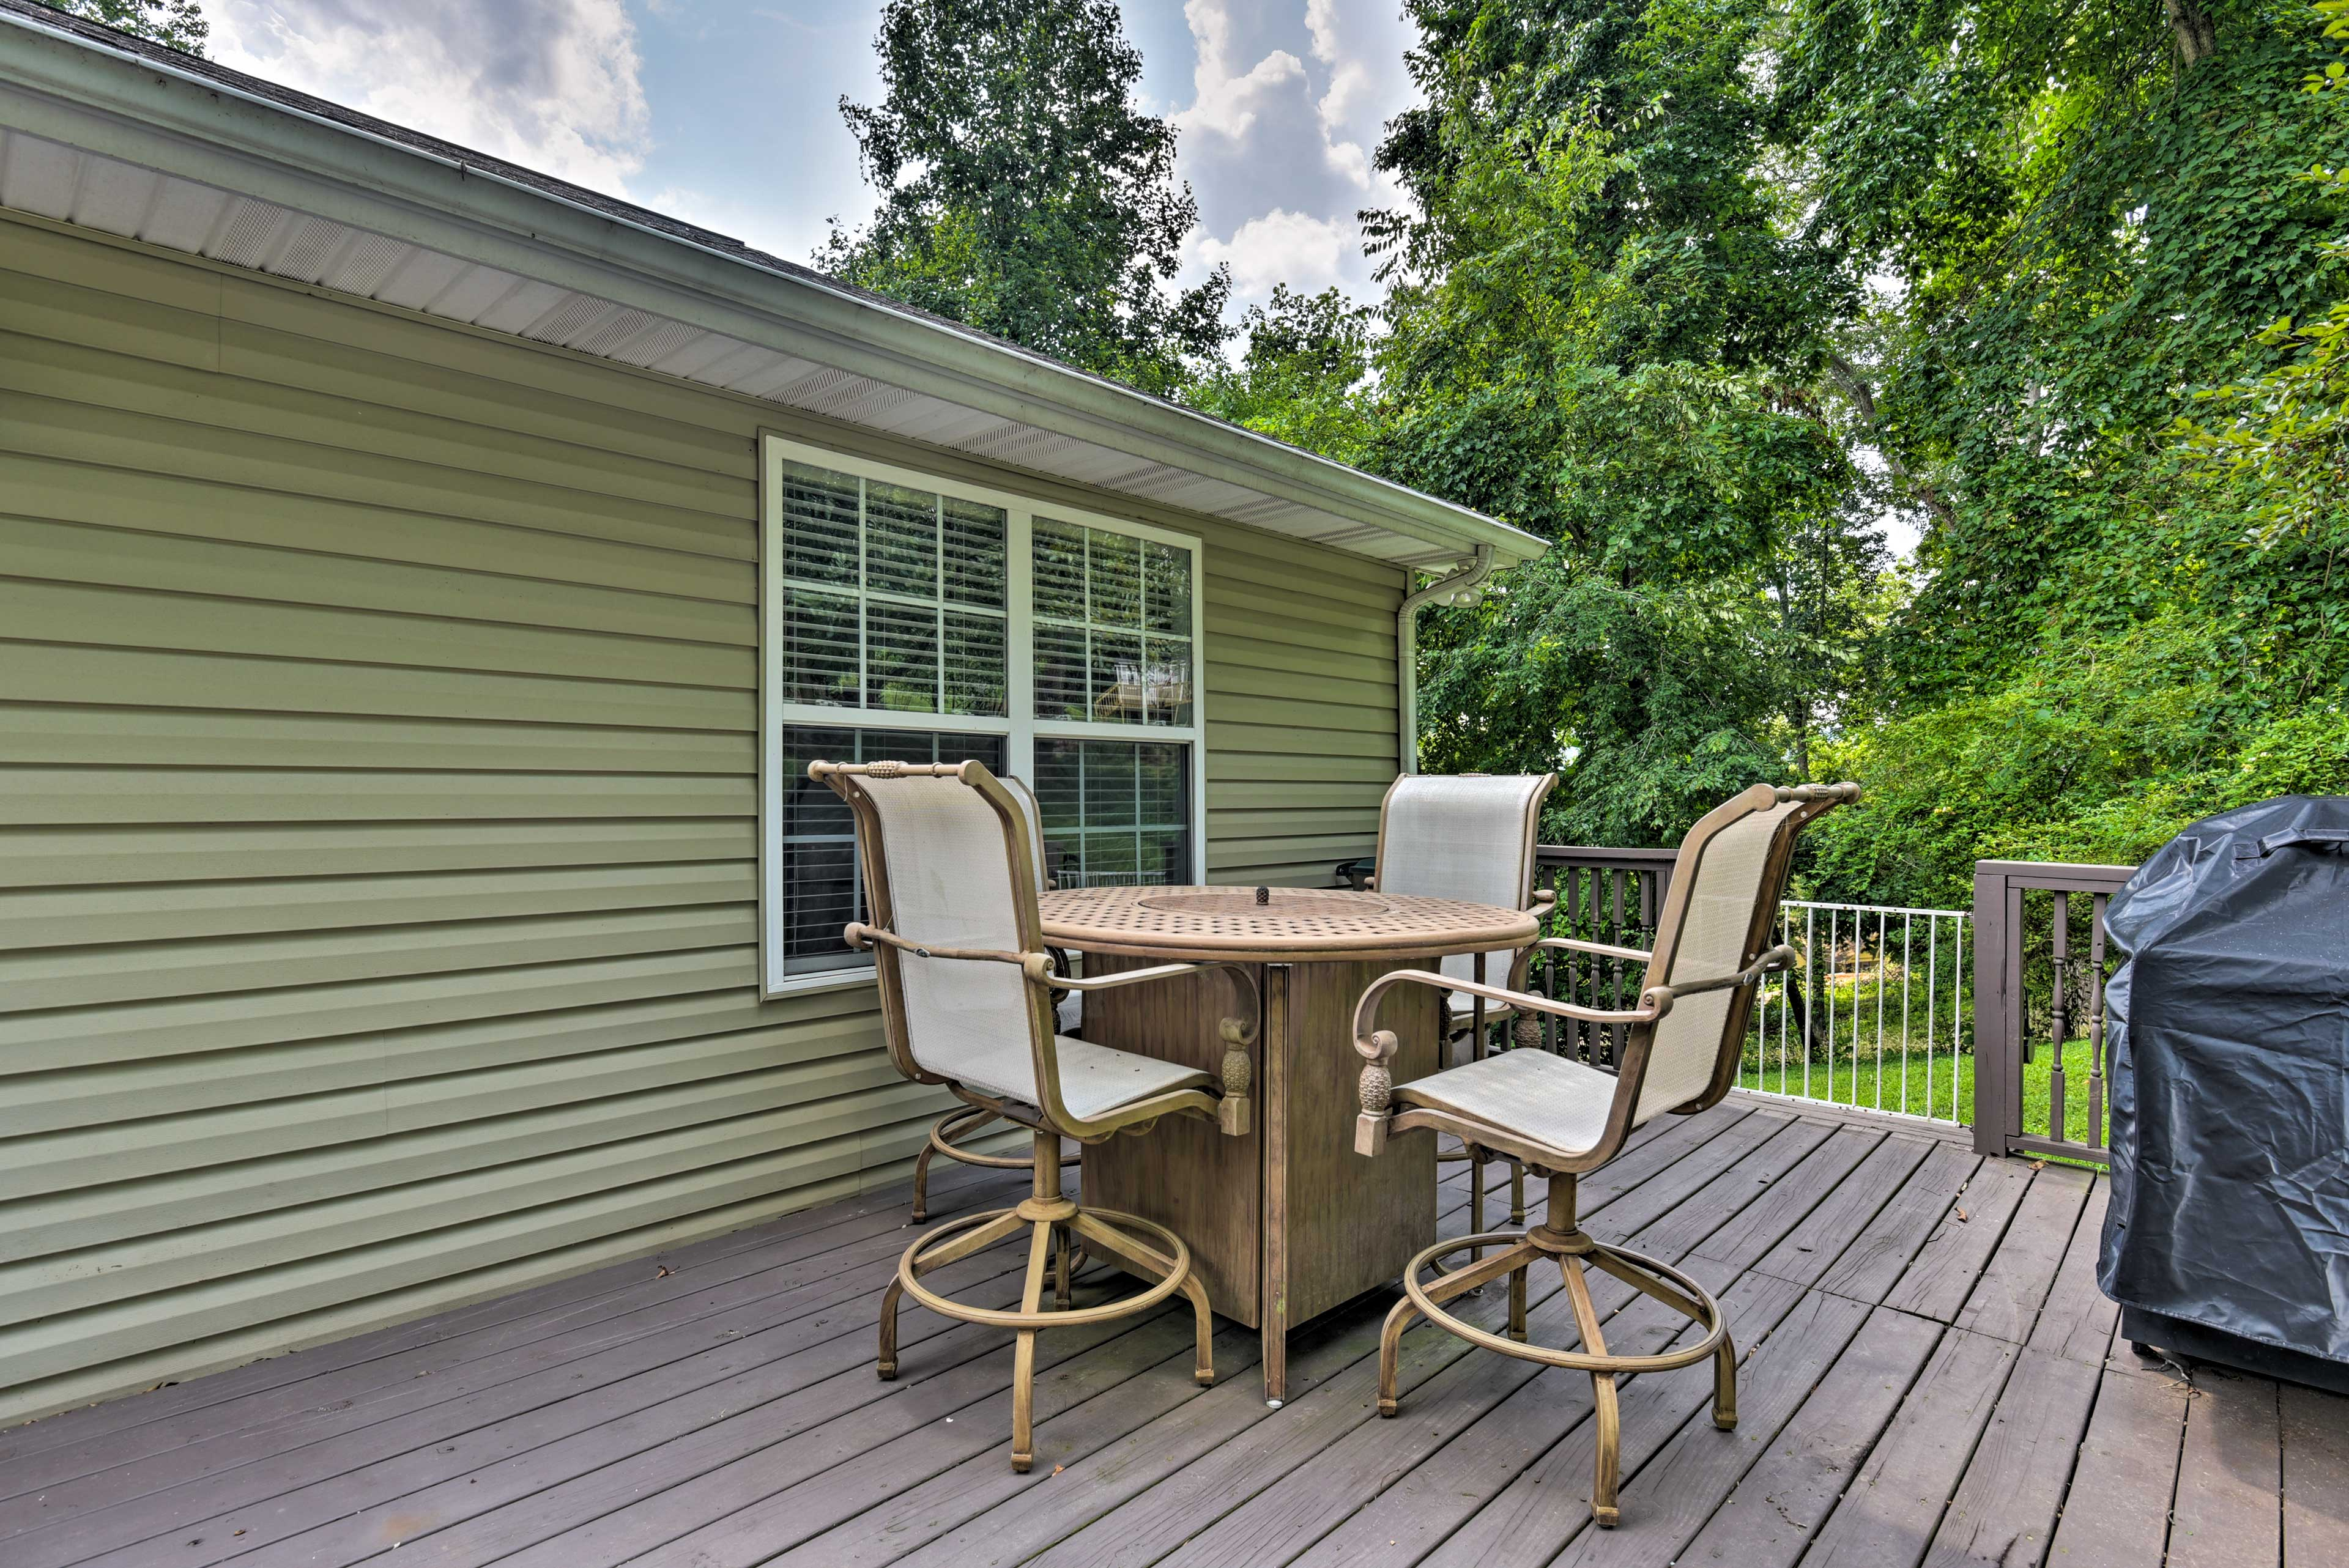 This deck is meant for dining and grilling.